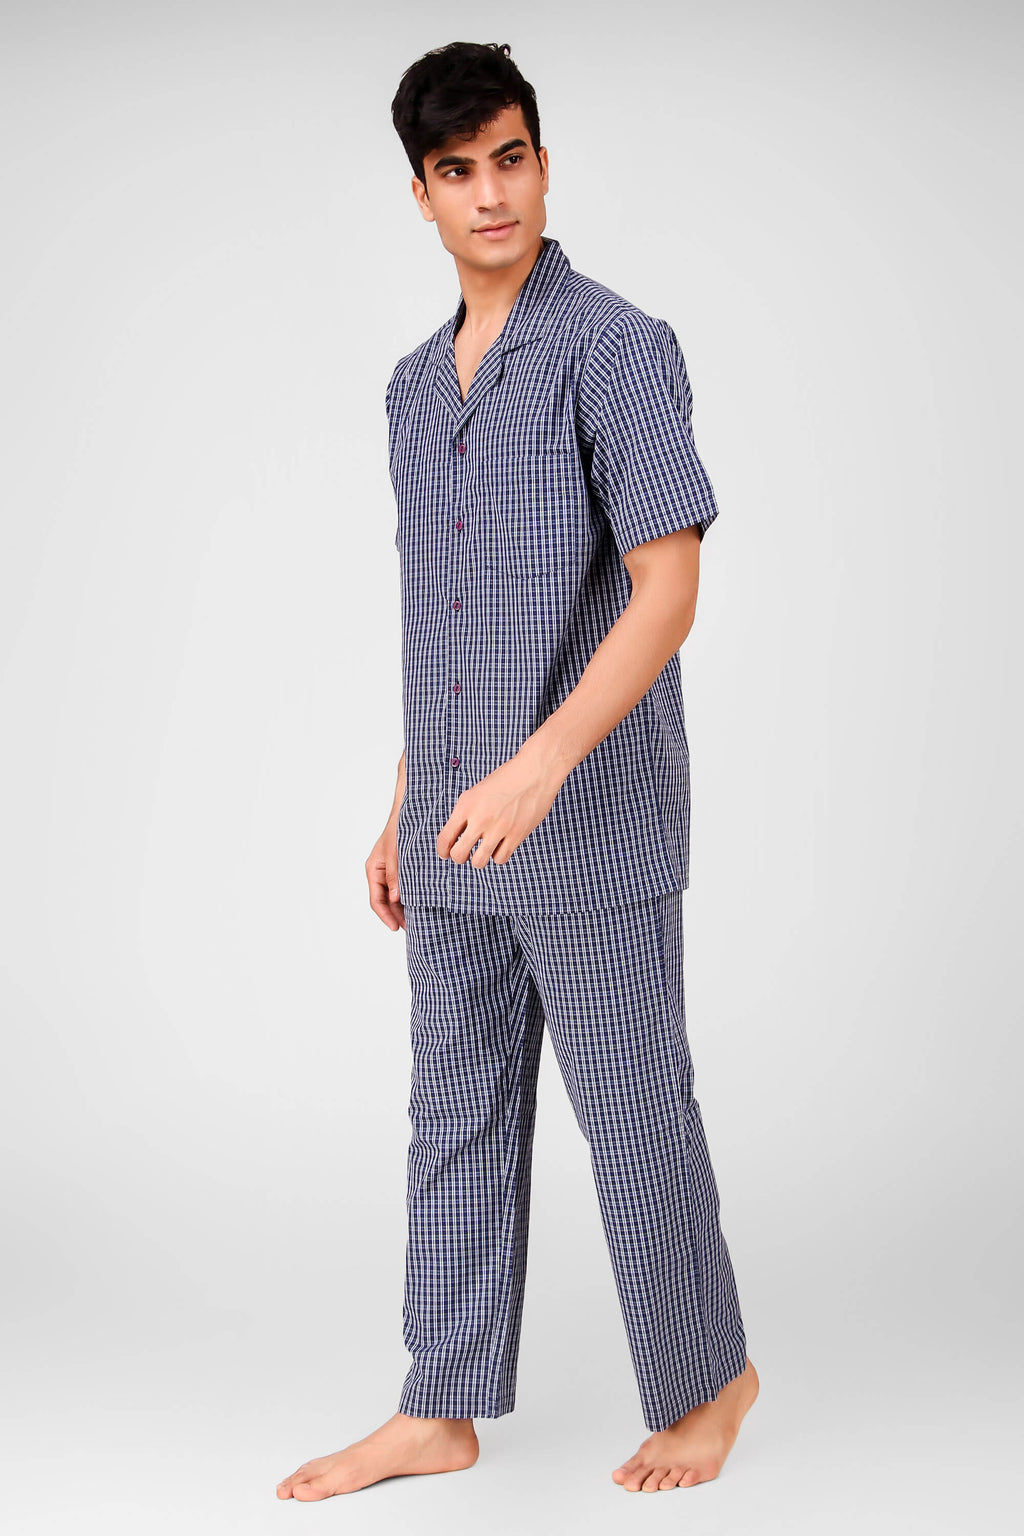 VB, Men's Pyjama Suit